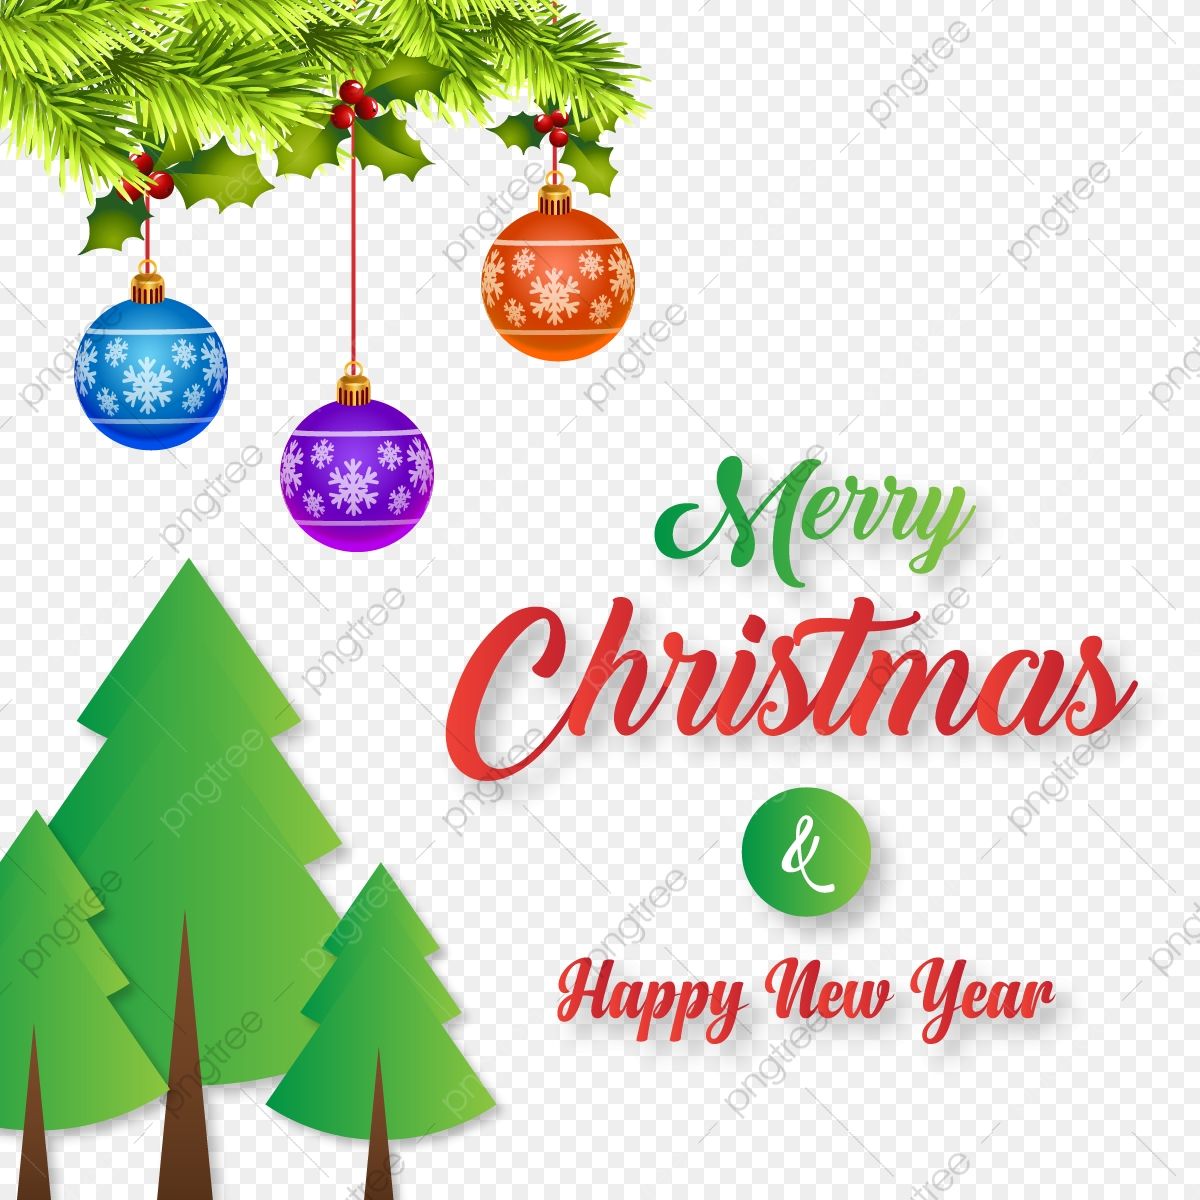 Christmas And New Year Wishes.Merry Christmas And New Year Wishes With Xmas Theme Flat